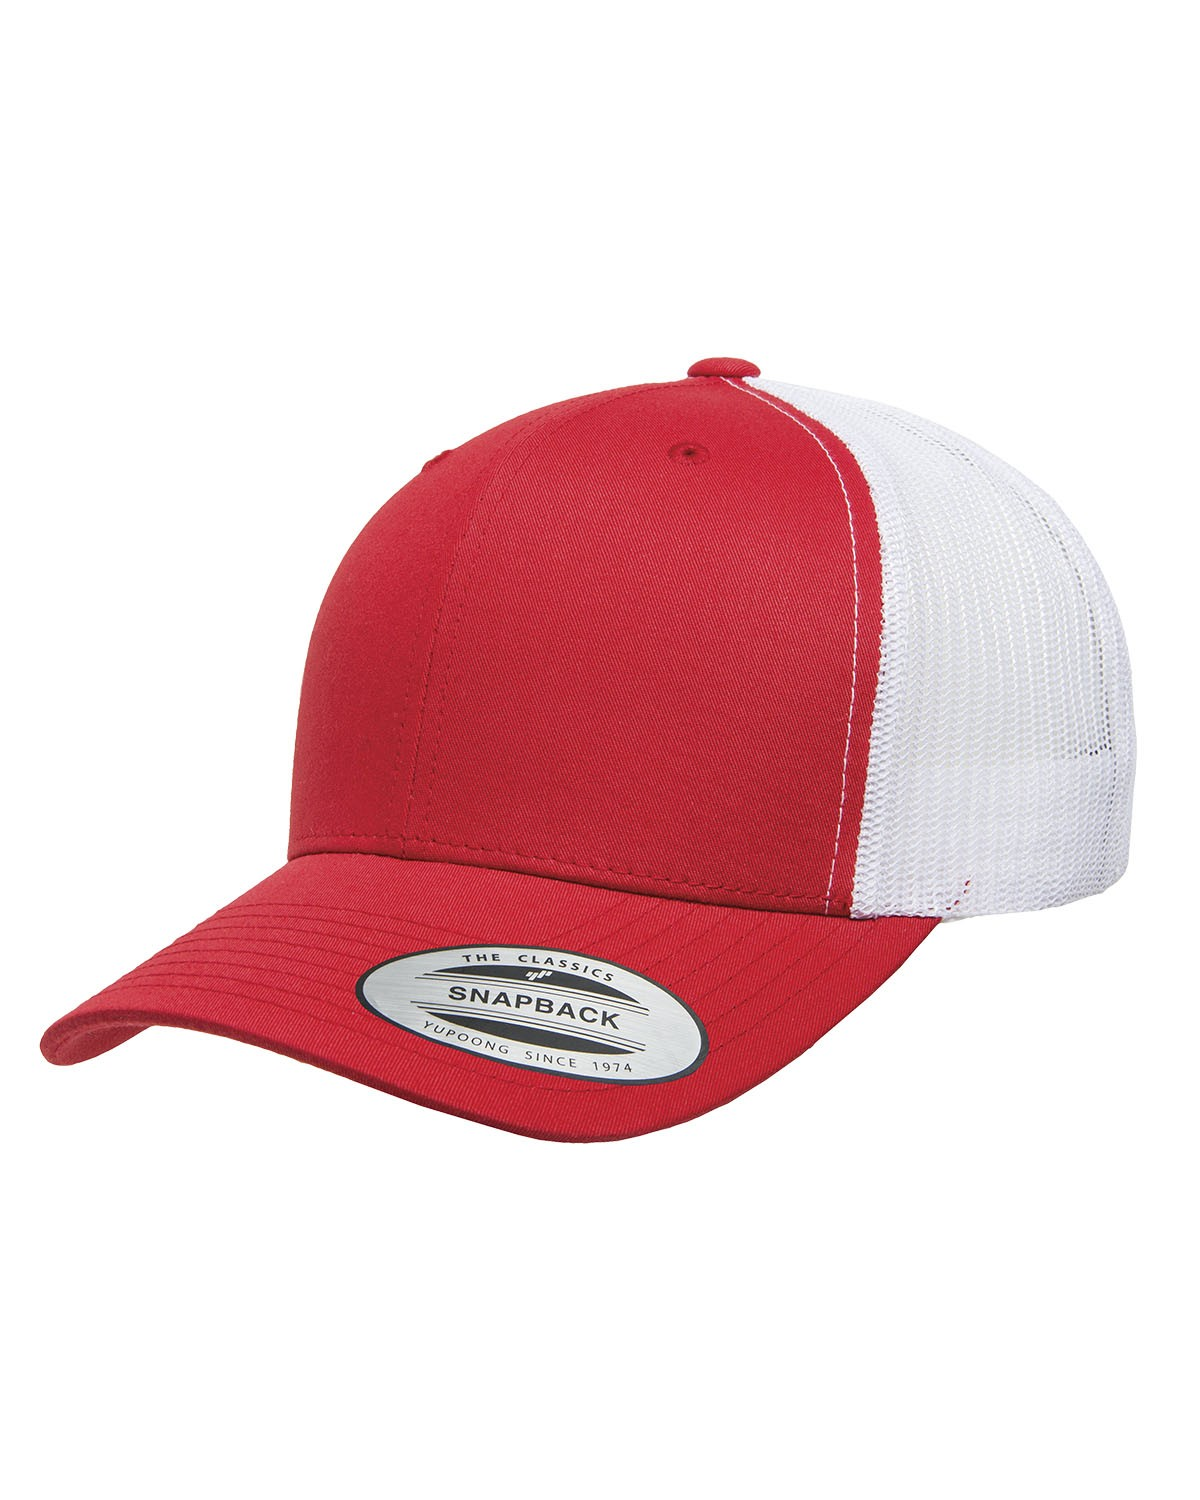 6606 Yupoong RED/WHITE